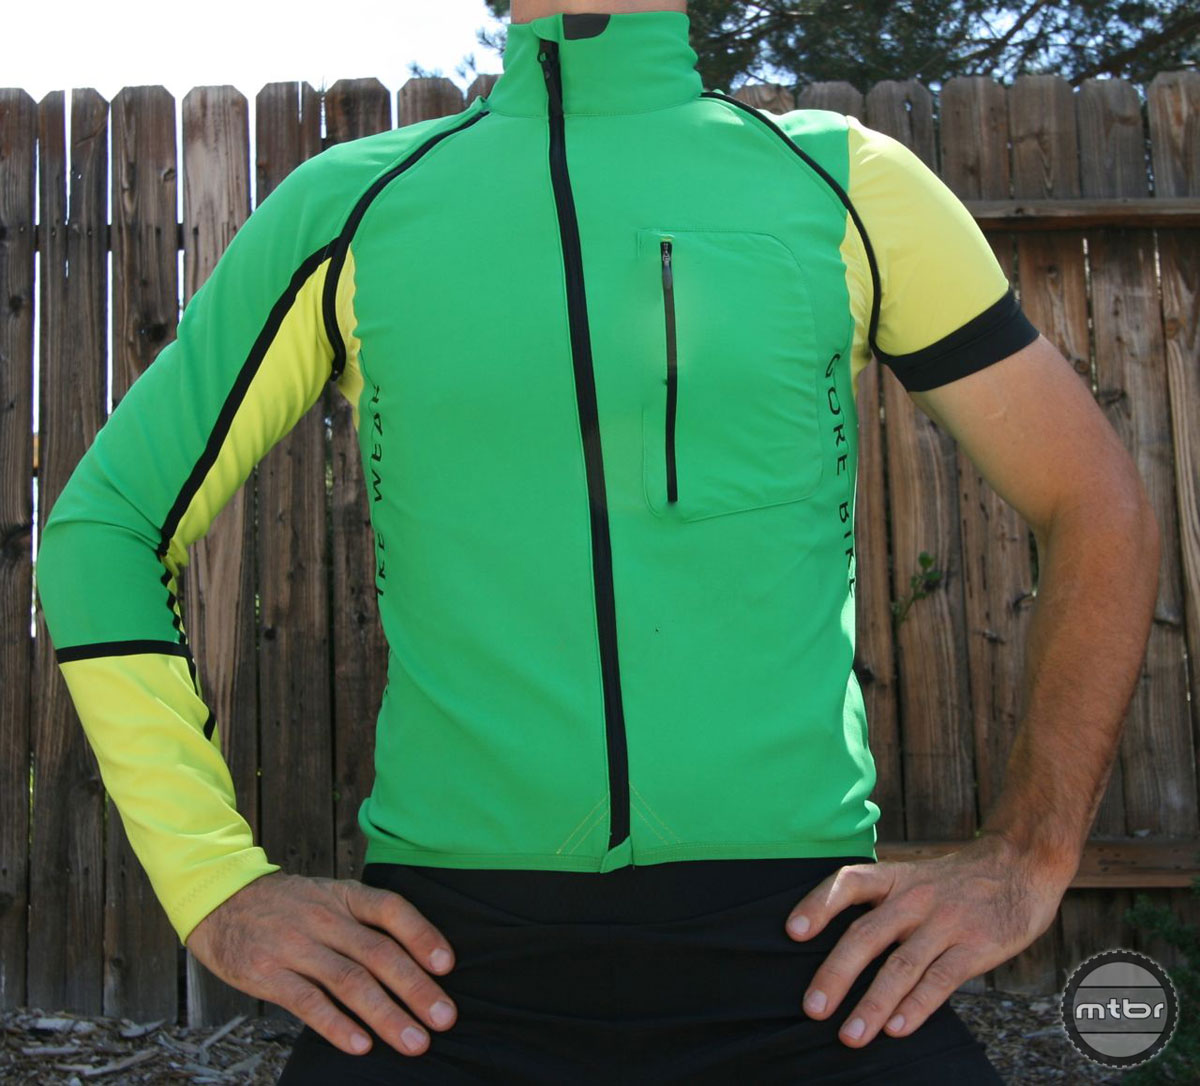 The ALP-X PRO WINDSTOPPER jersey is extremely versatile for a wide range of temperatures and conditions.